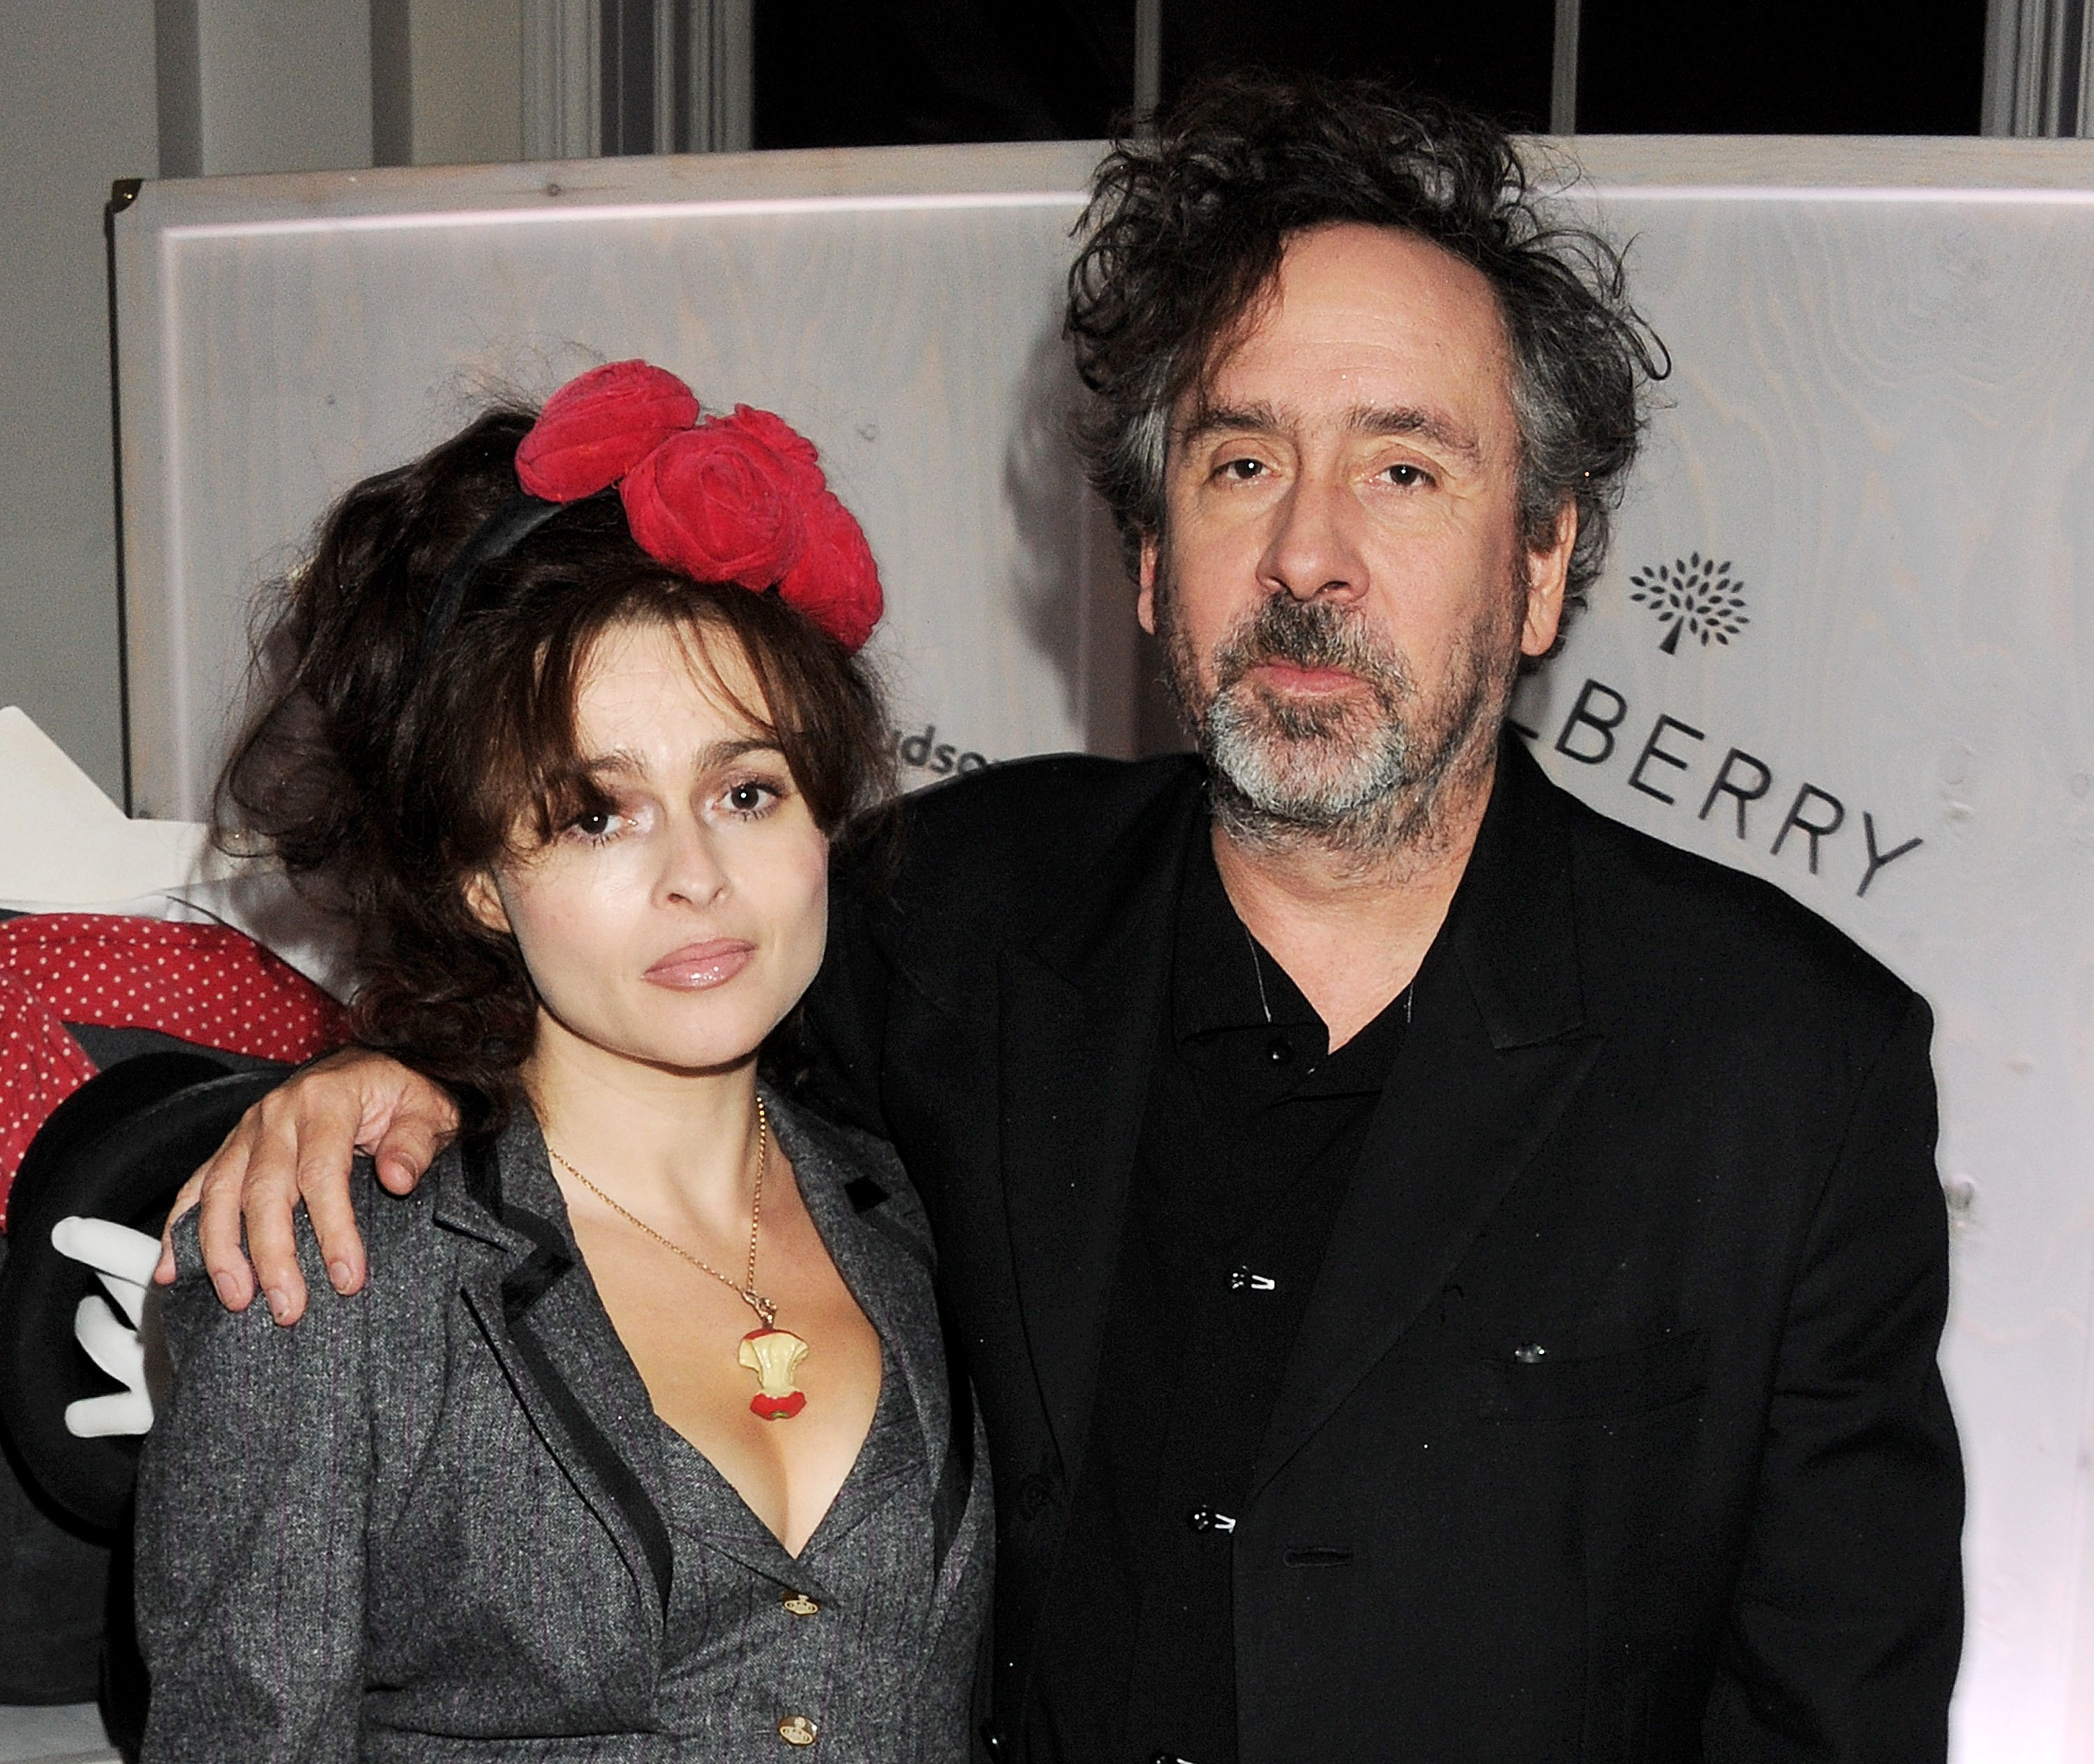 """Helena Bonham Carter and Tim Burton attend a viewing of """"Tim Walker: Story Teller"""" in London, England on October 17, 2012 